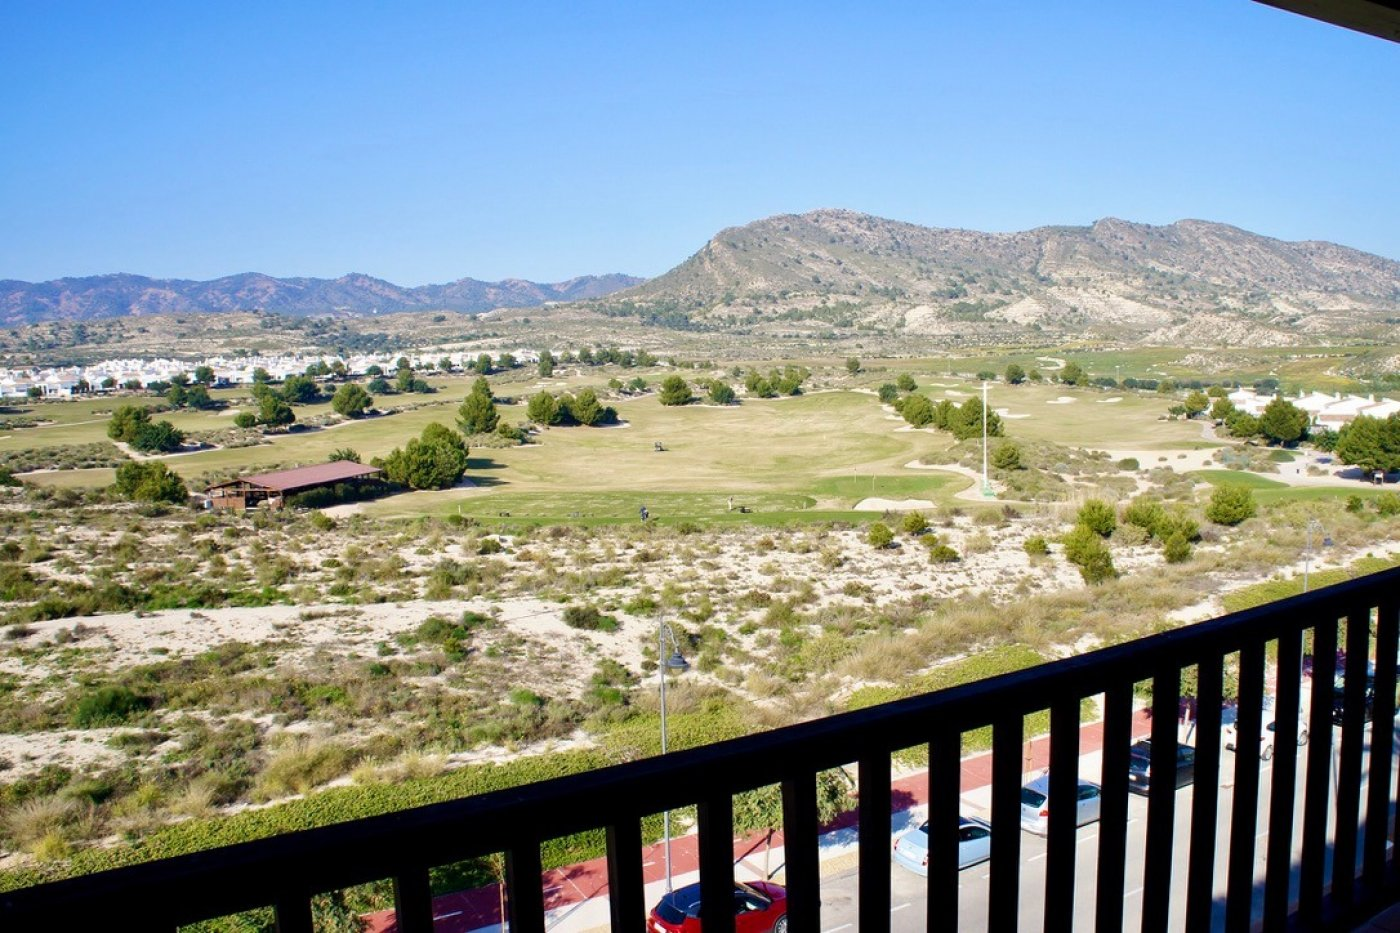 Apartment ref 3265-03210 for sale in El Valle Golf Resort Spain - Quality Homes Costa Cálida